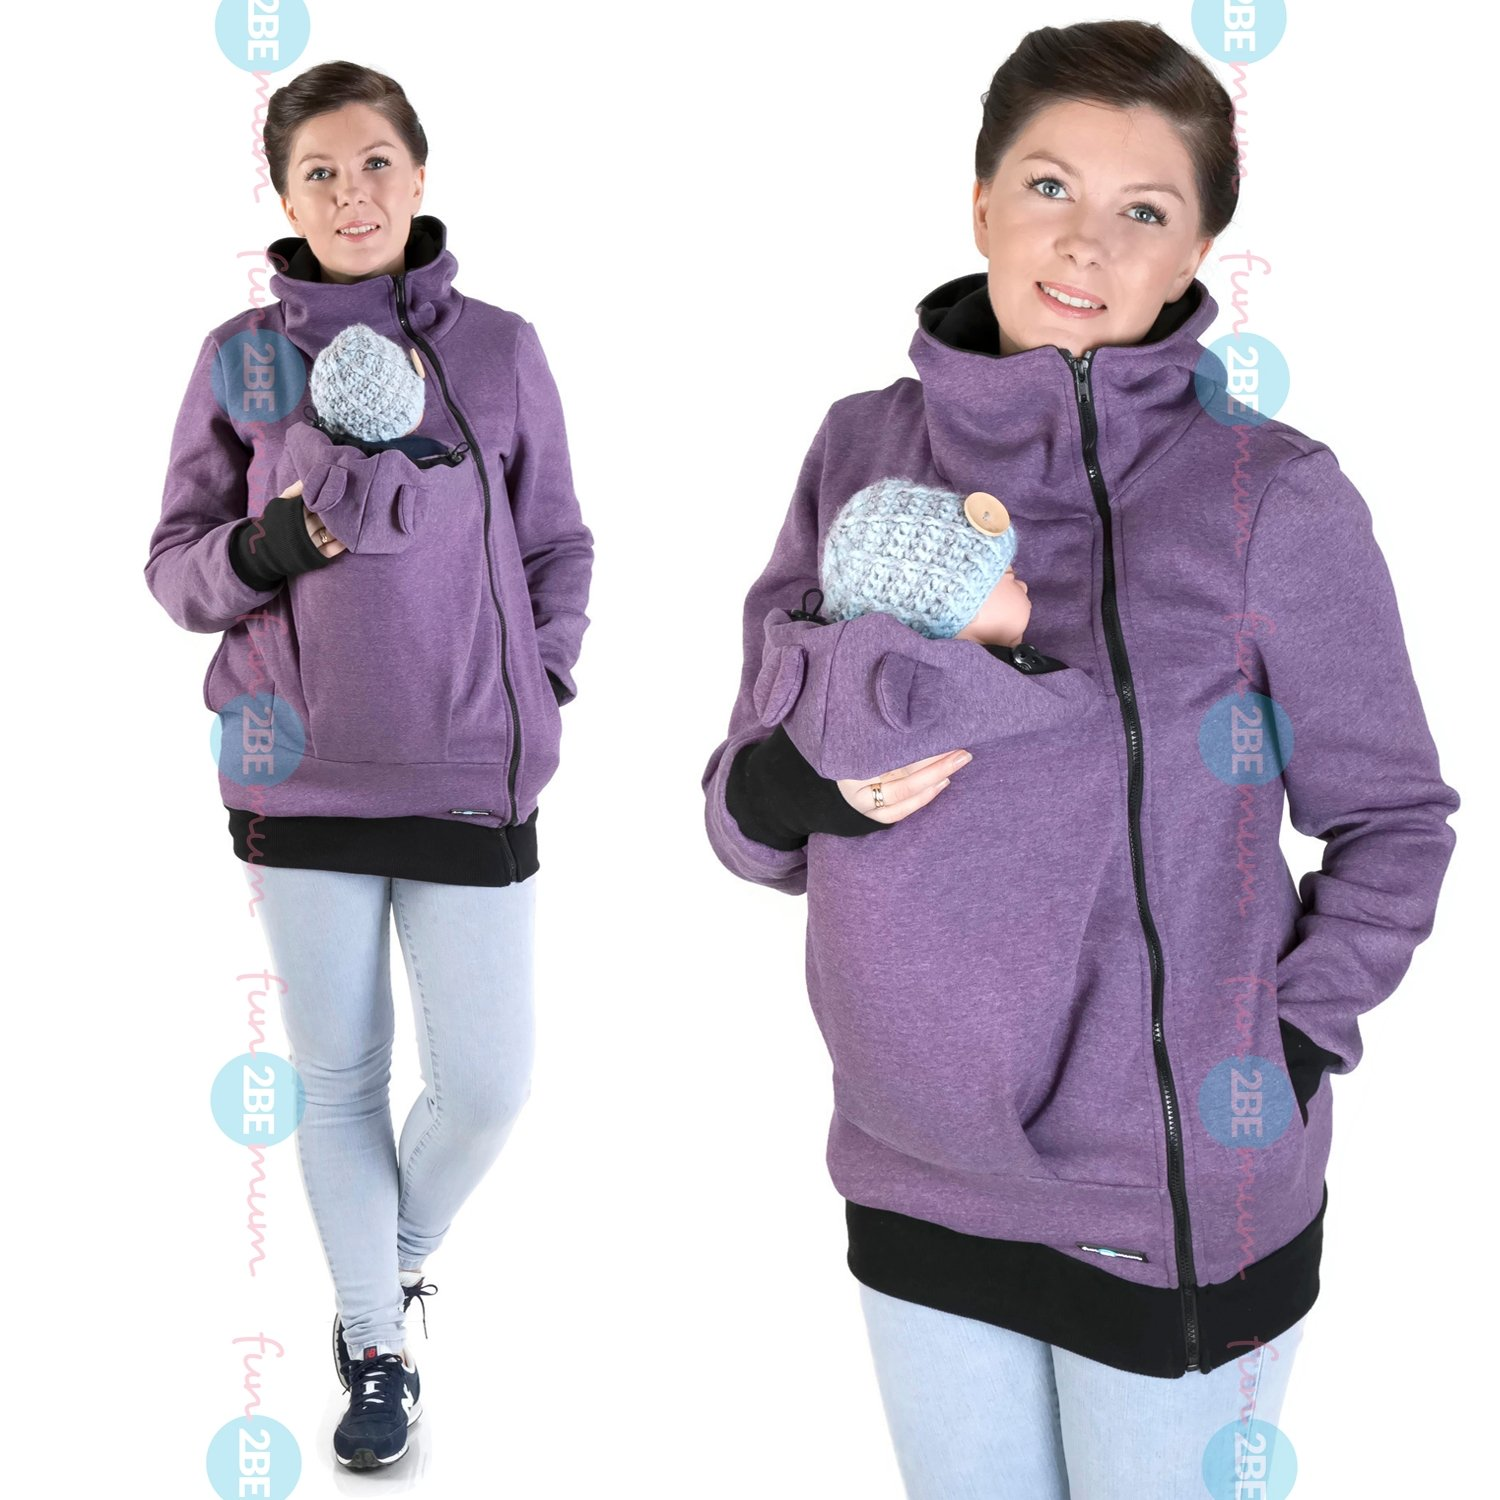 FUN2BEMUM Baby Carrier babycarrying Jacket Hoodie NP22 Purple